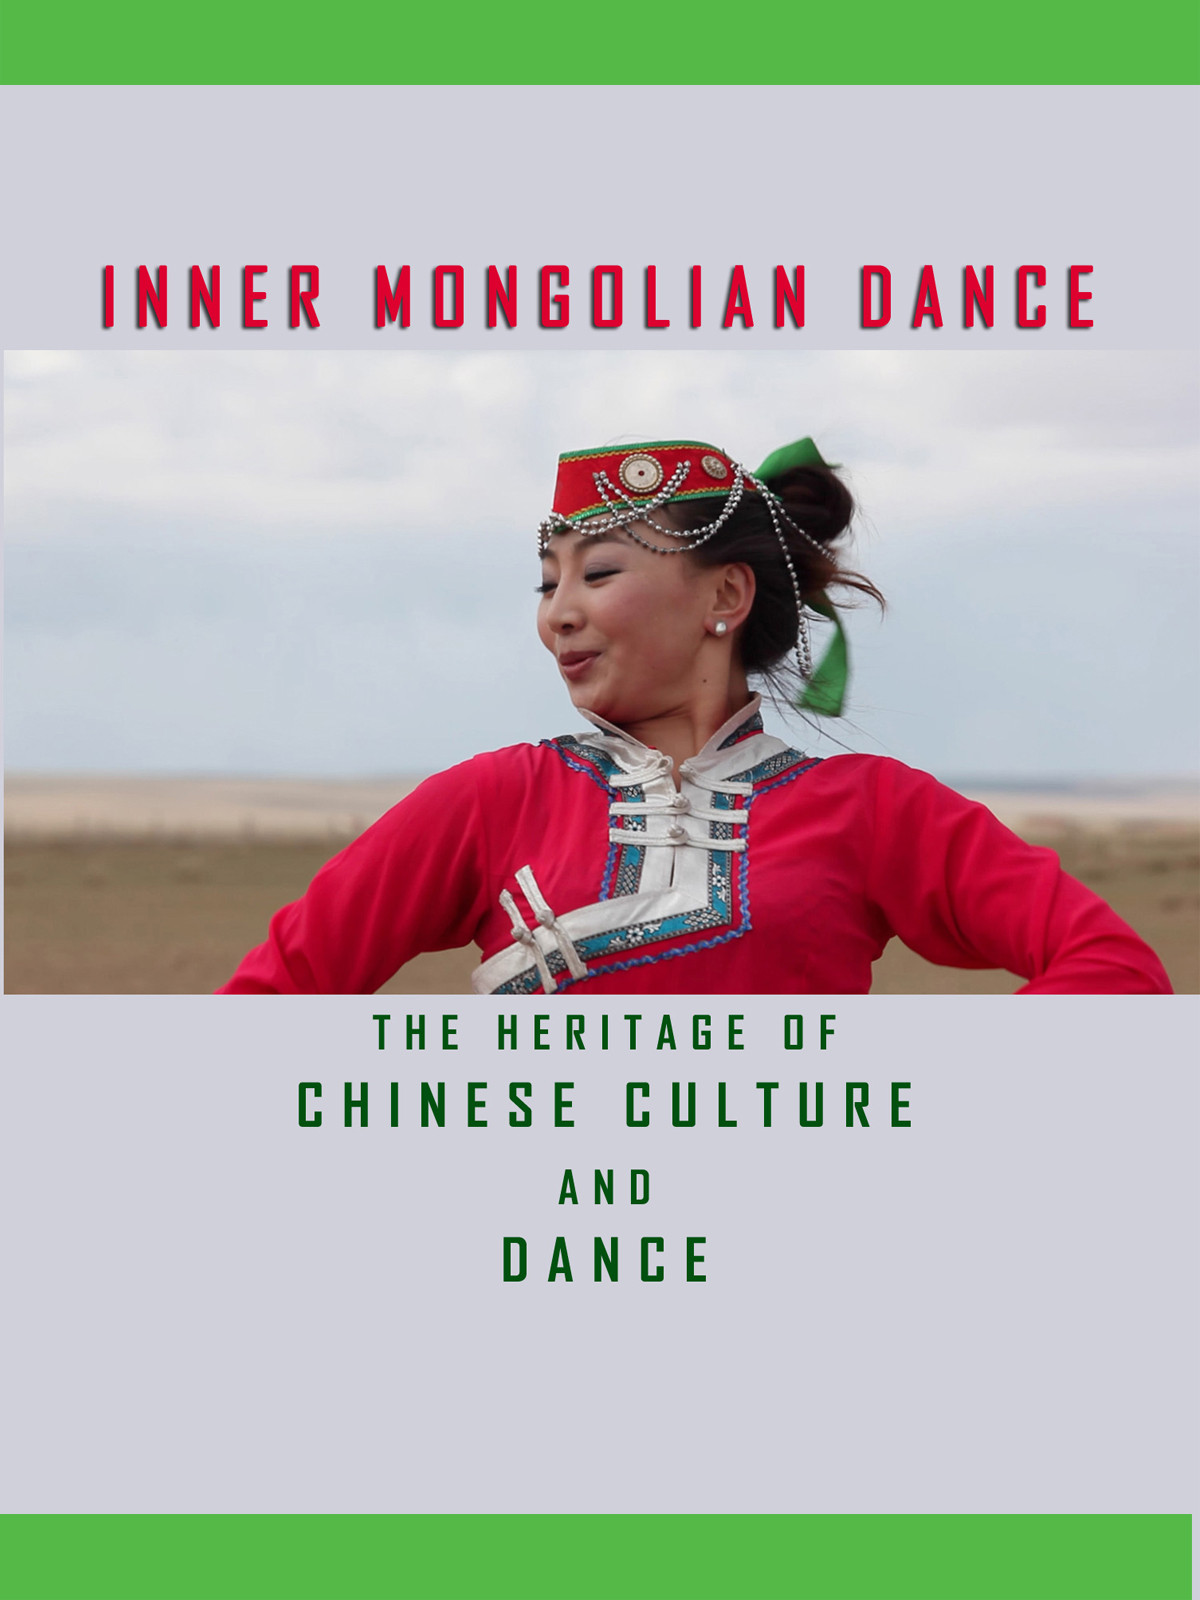 T8926 - The Heritage of Chinese Culture and Dance Ethnic Dance-Inner Mongolian